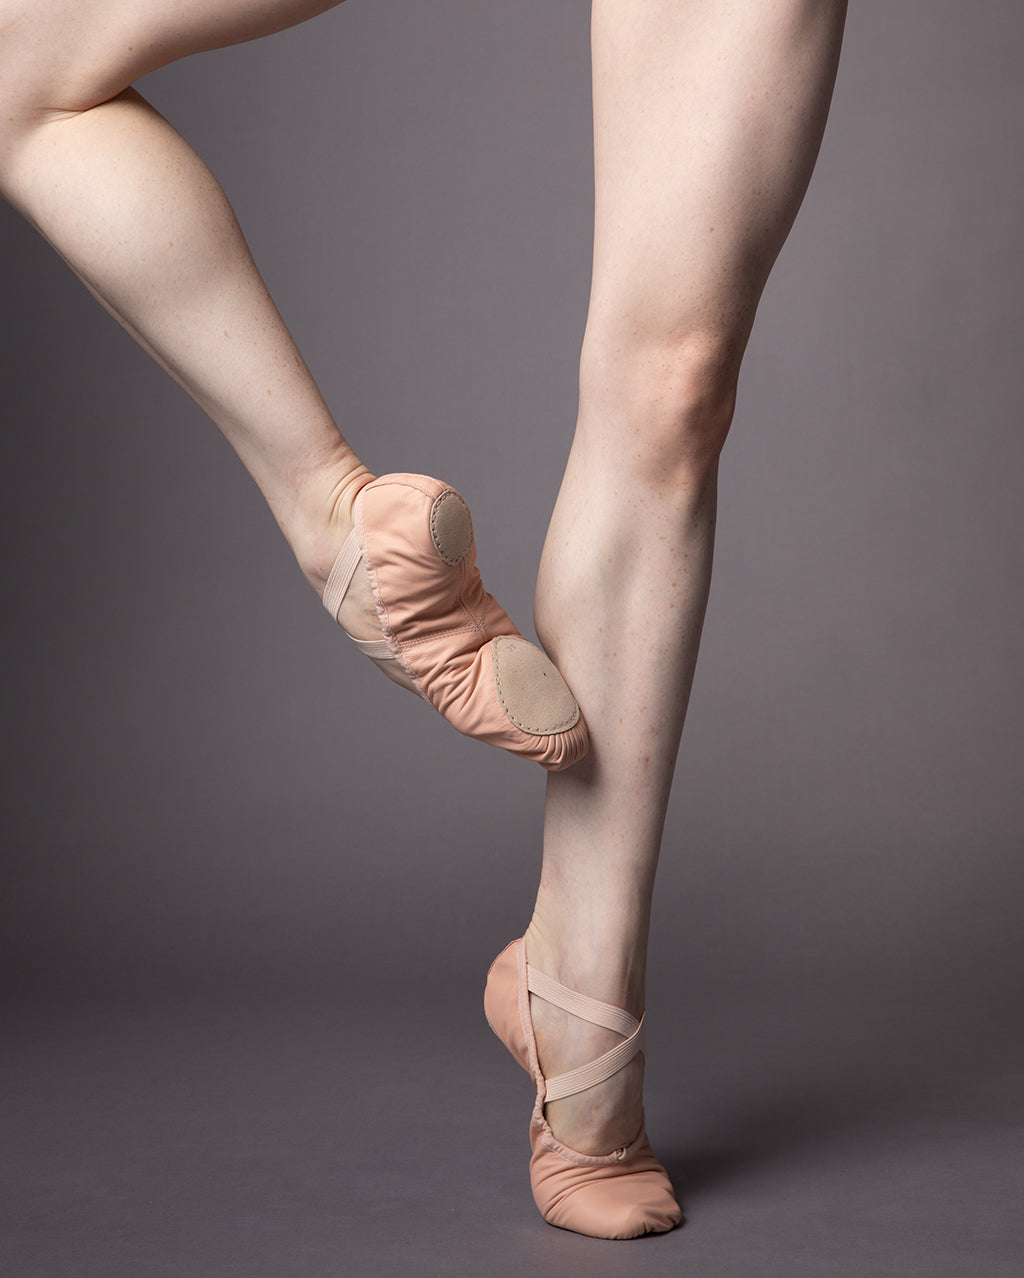 The legs of a ballet dancer wearing the Precision ballet shoes